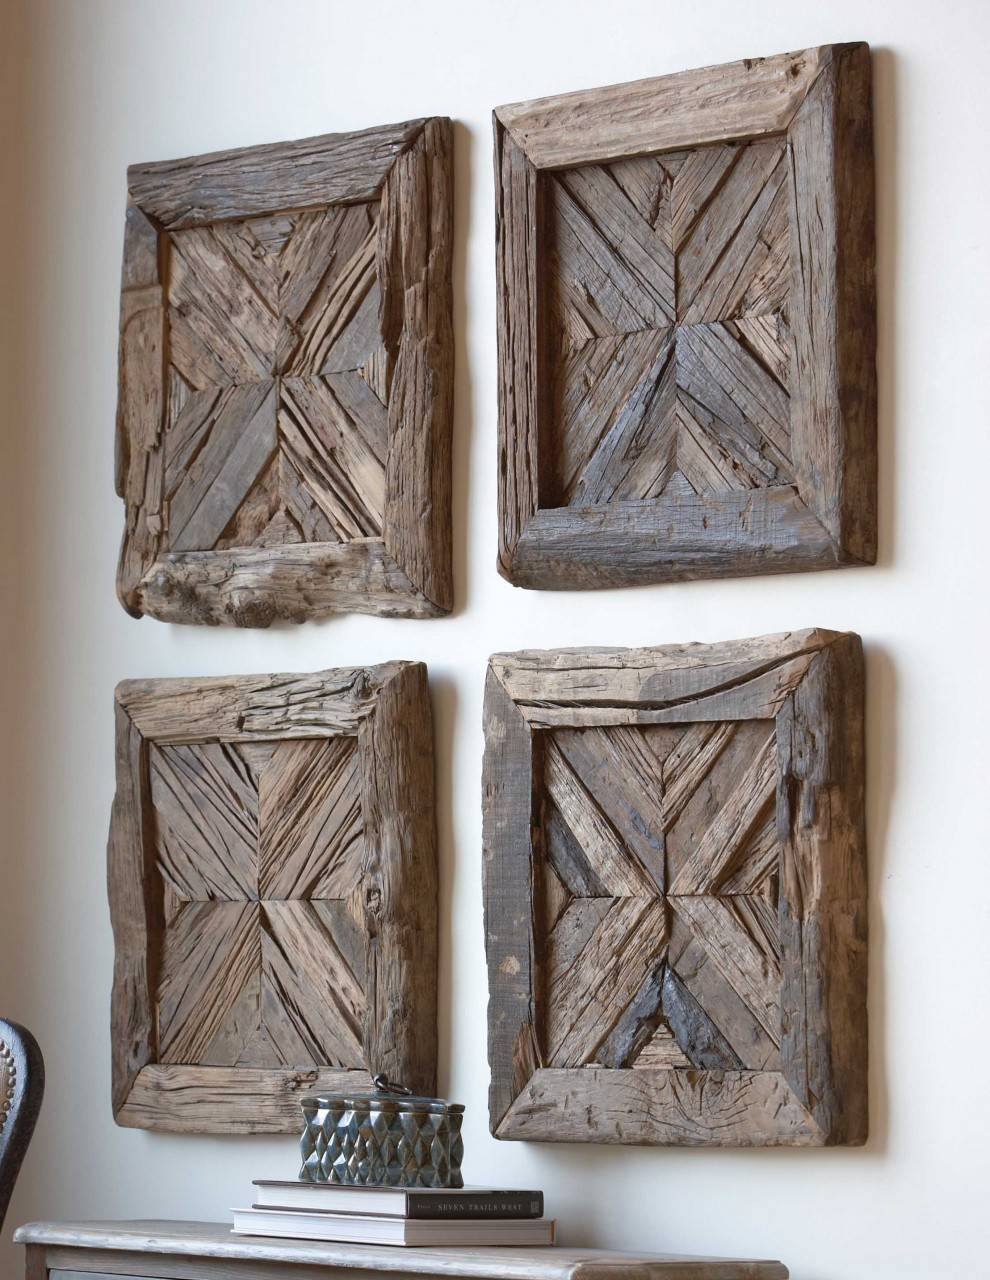 Rustic Metal Wall Art At Home And Interior Design Ideas With Recent Rustic Metal Wall Art (View 4 of 20)